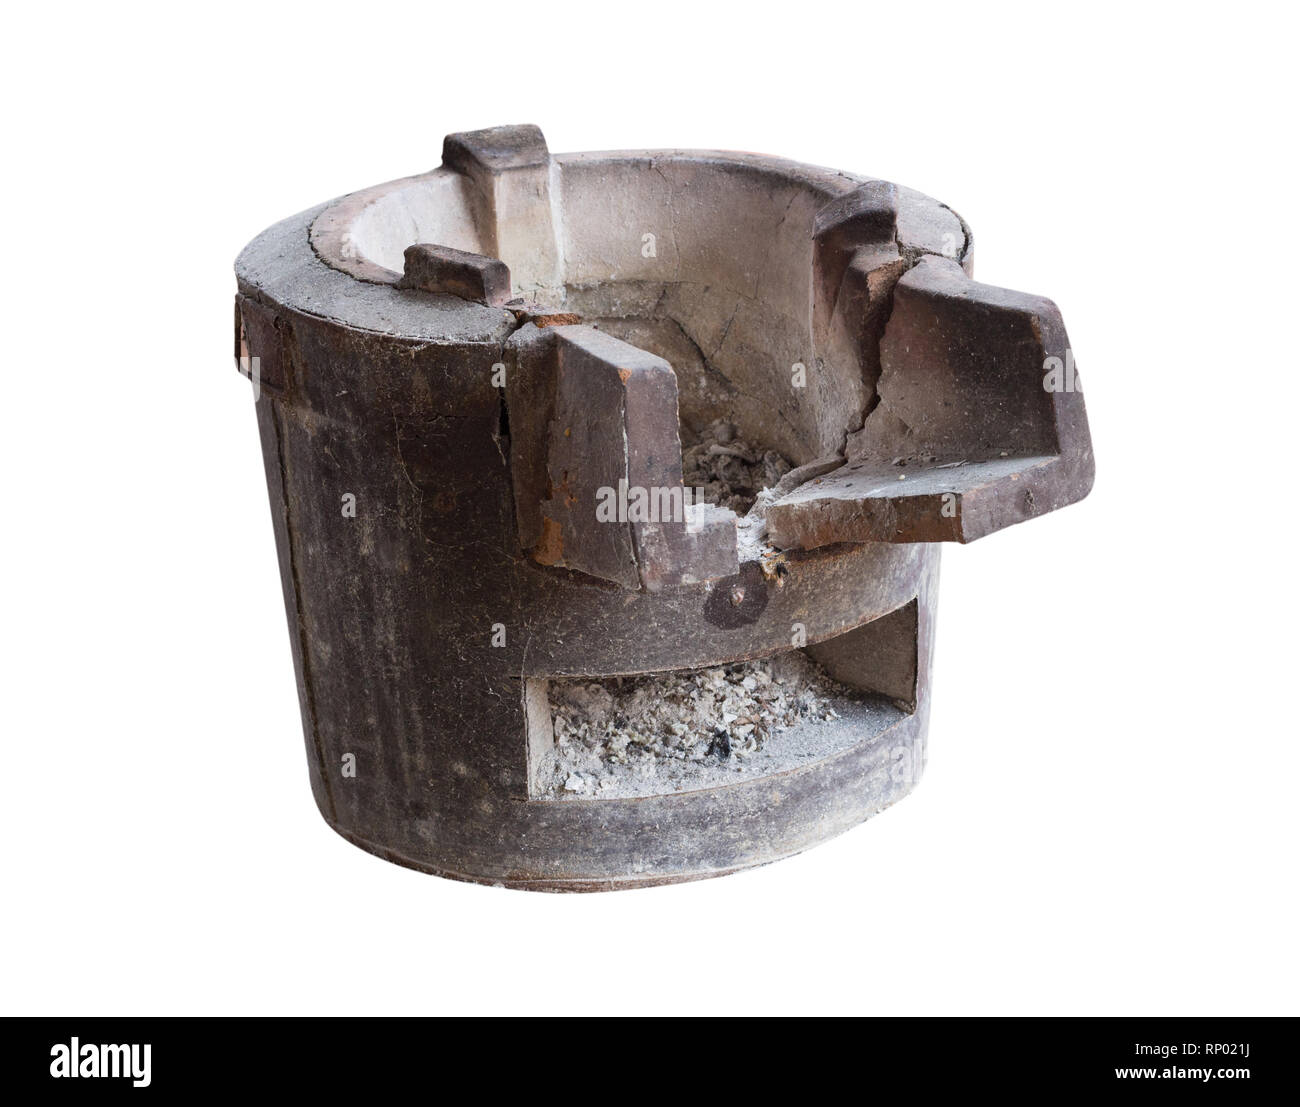 Isolate Close pottery stove ashes rural Thailand, which has been used for a long time. - Stock Image